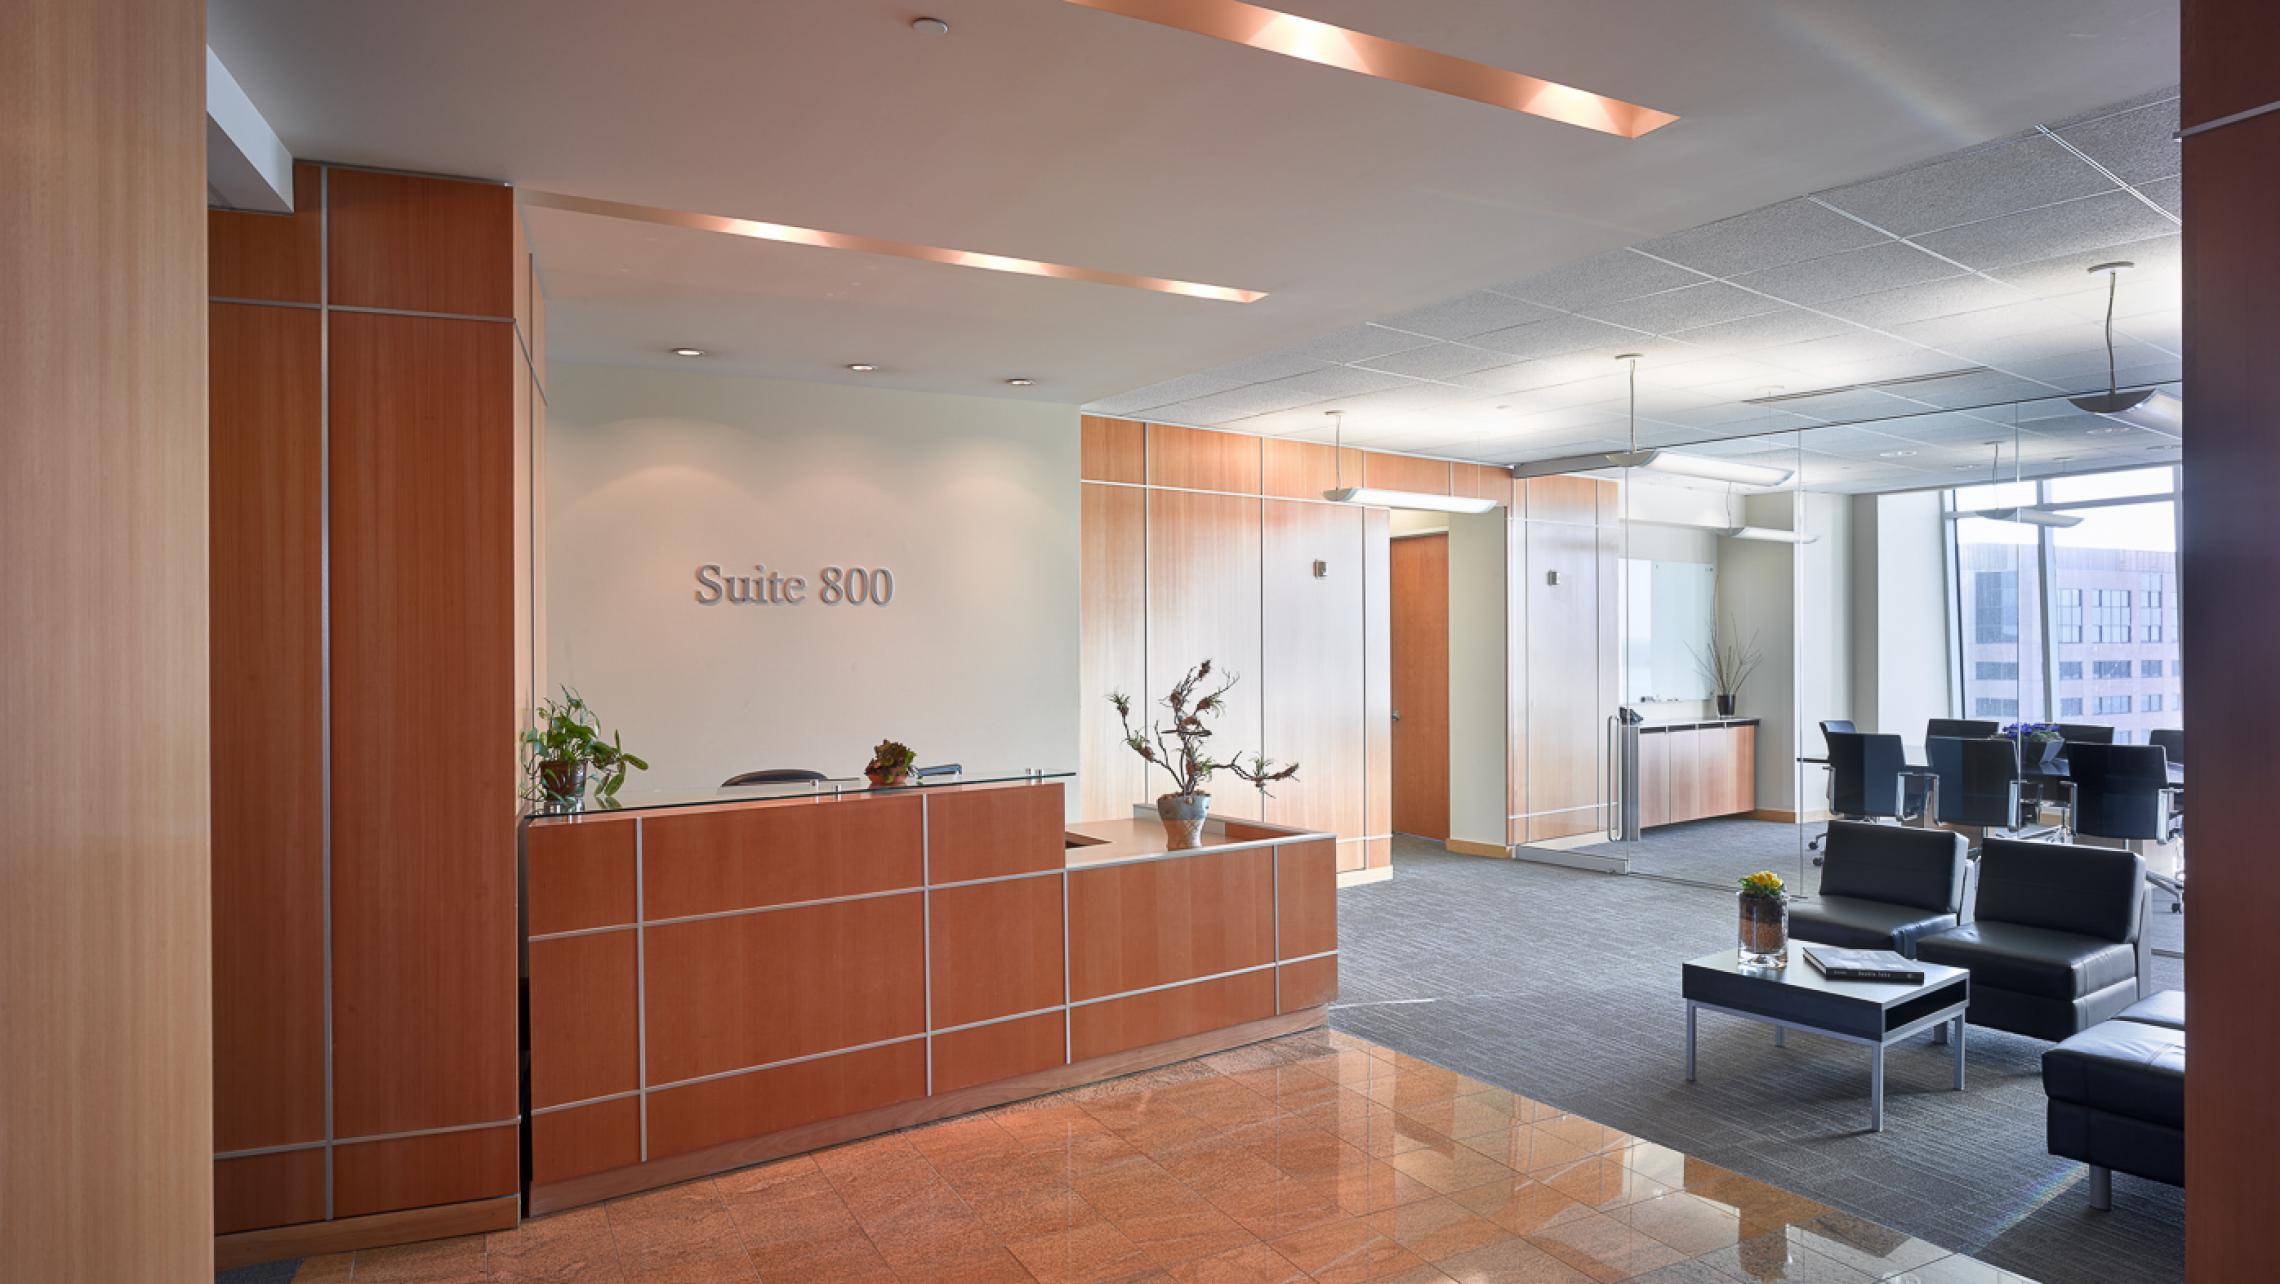 ULI Capitol Executive Suites - Reception Desk